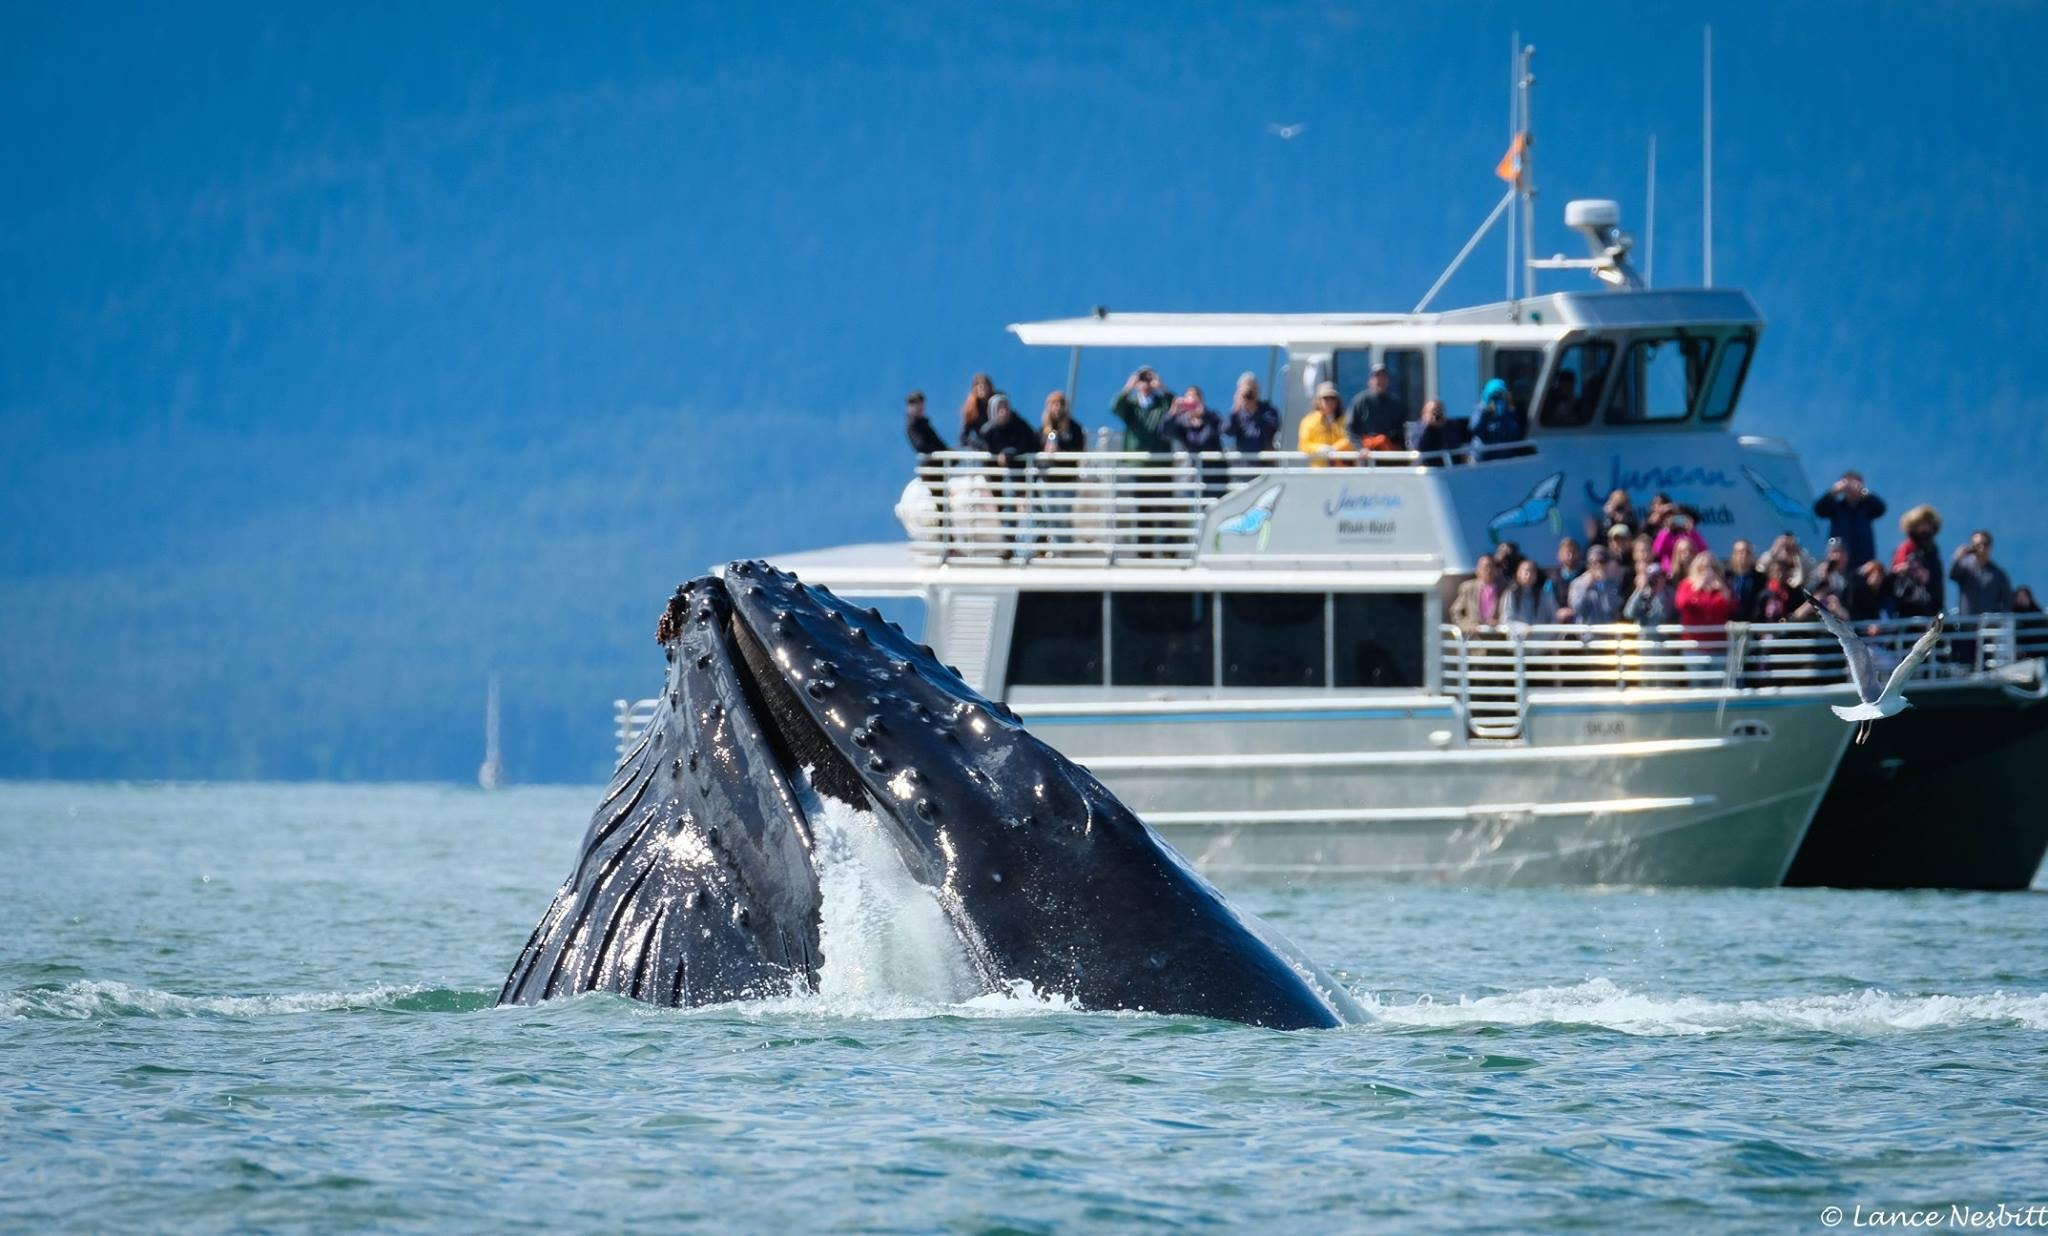 The Humpback Whale Explained